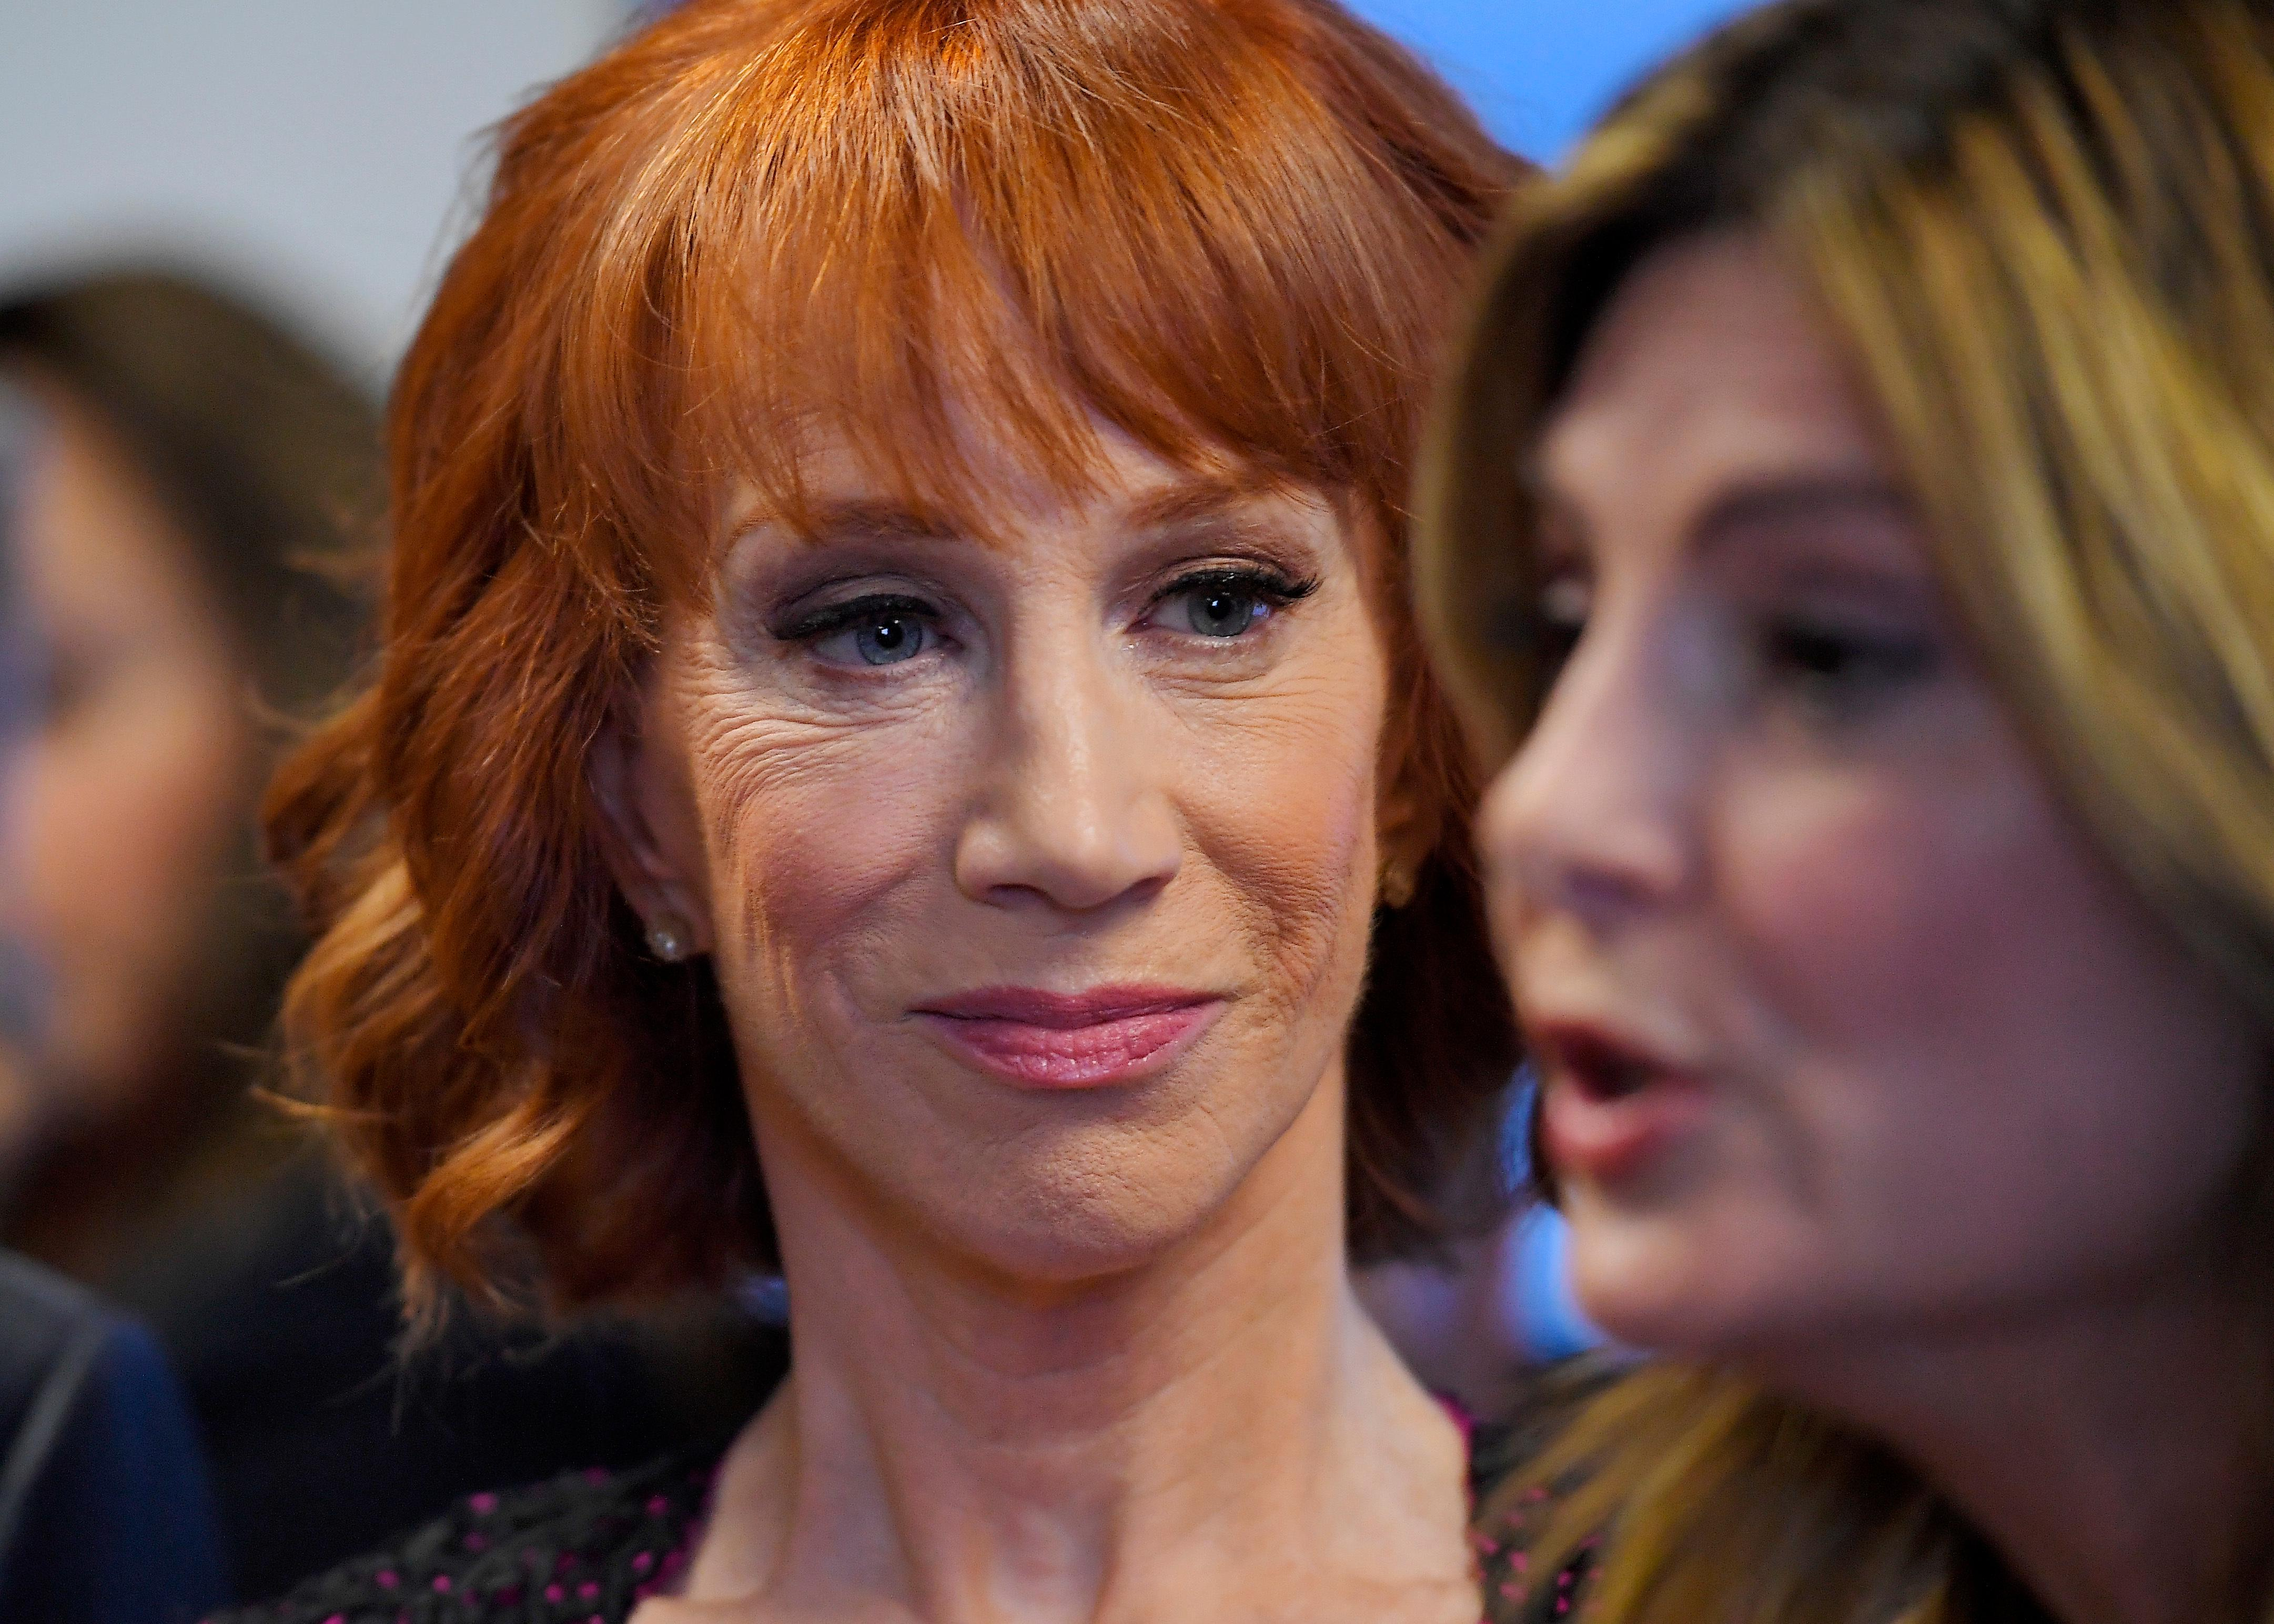 FILE - In this June 2, 2017, file photo, comedian Kathy Griffin, left, listens as her attorney Lisa Bloom speaks during a news conference in Los Angeles, to discuss the backlash since Griffin released a photo and video of her displaying a likeness of President Donald Trump's severed head. The AP reported on July 28, 2017, that a story claiming Griffin was jailed last month for walking around New York wearing fake blood and a Trump Halloween mask is a hoax. (AP Photo/Mark J. Terrill, File)